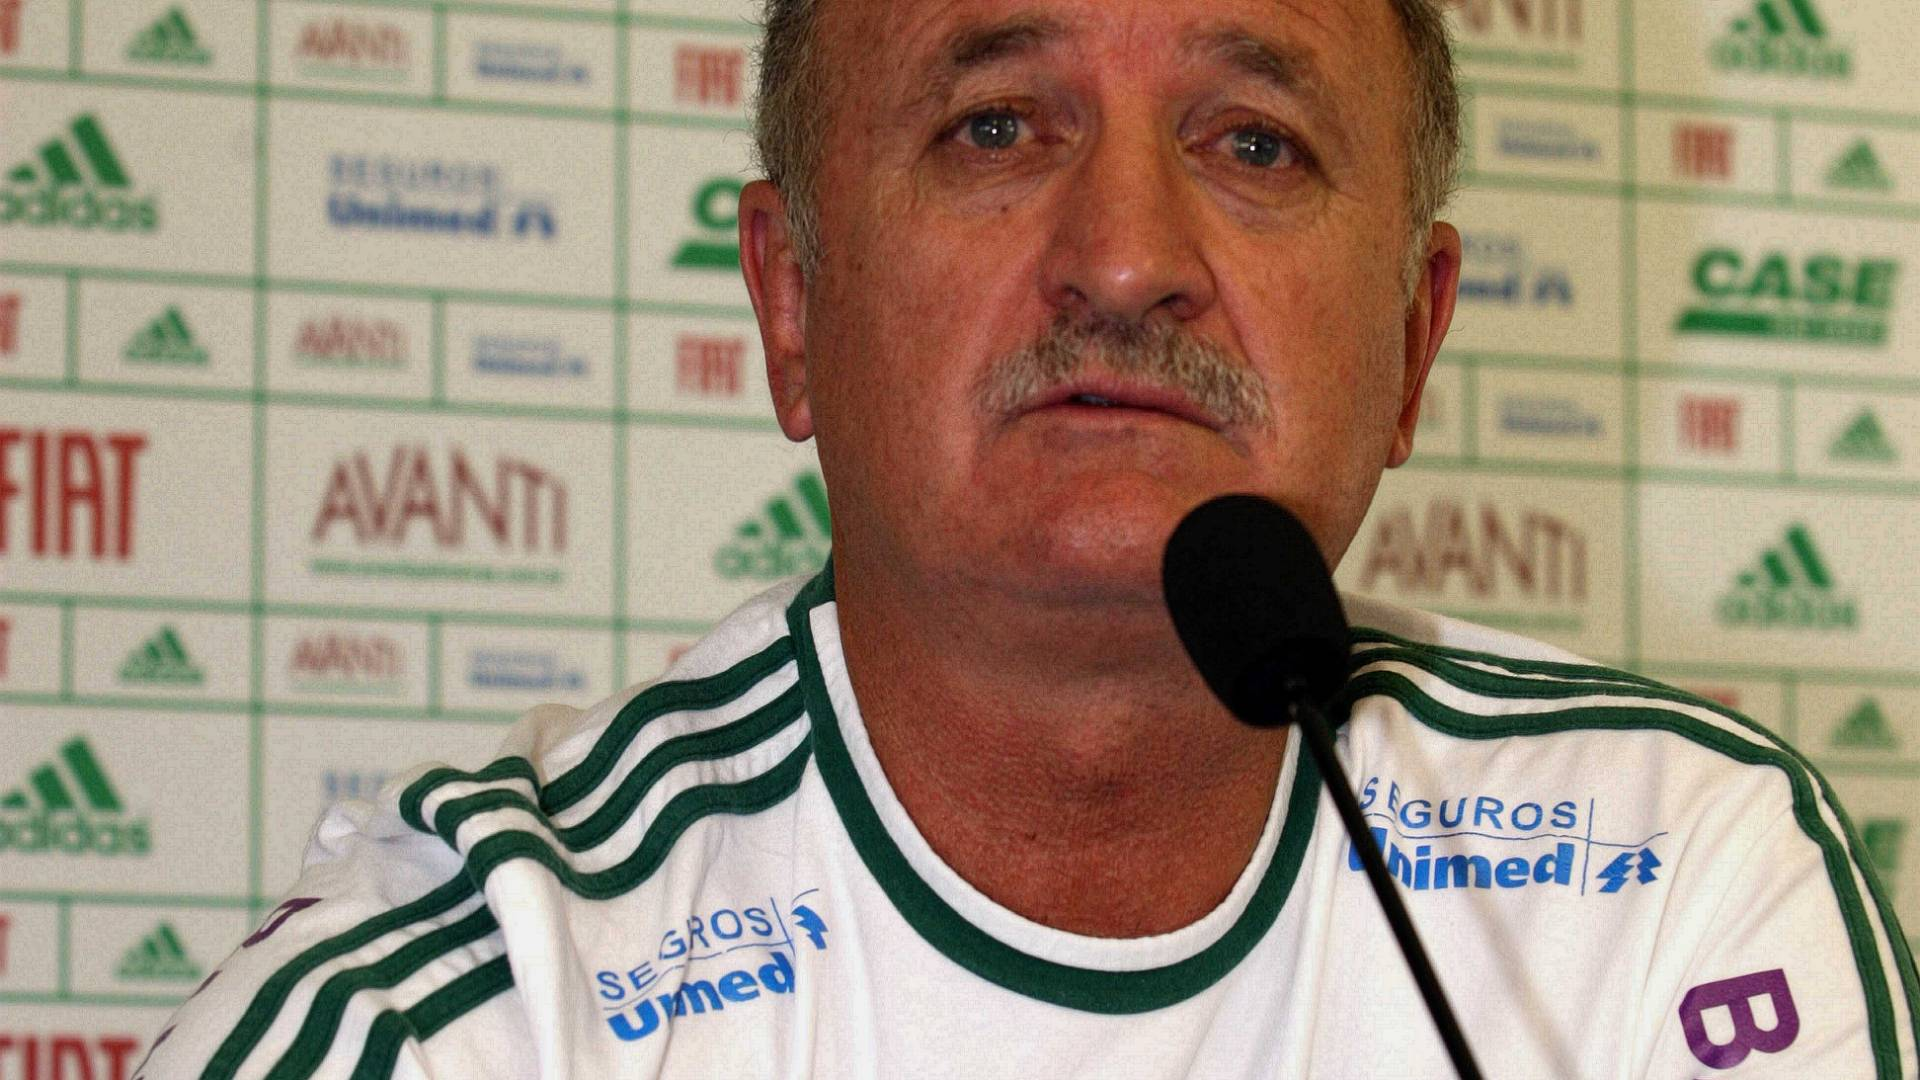 Luiz Felipe Scolari, tcnico do Palmeiras, durante entrevista coletiva